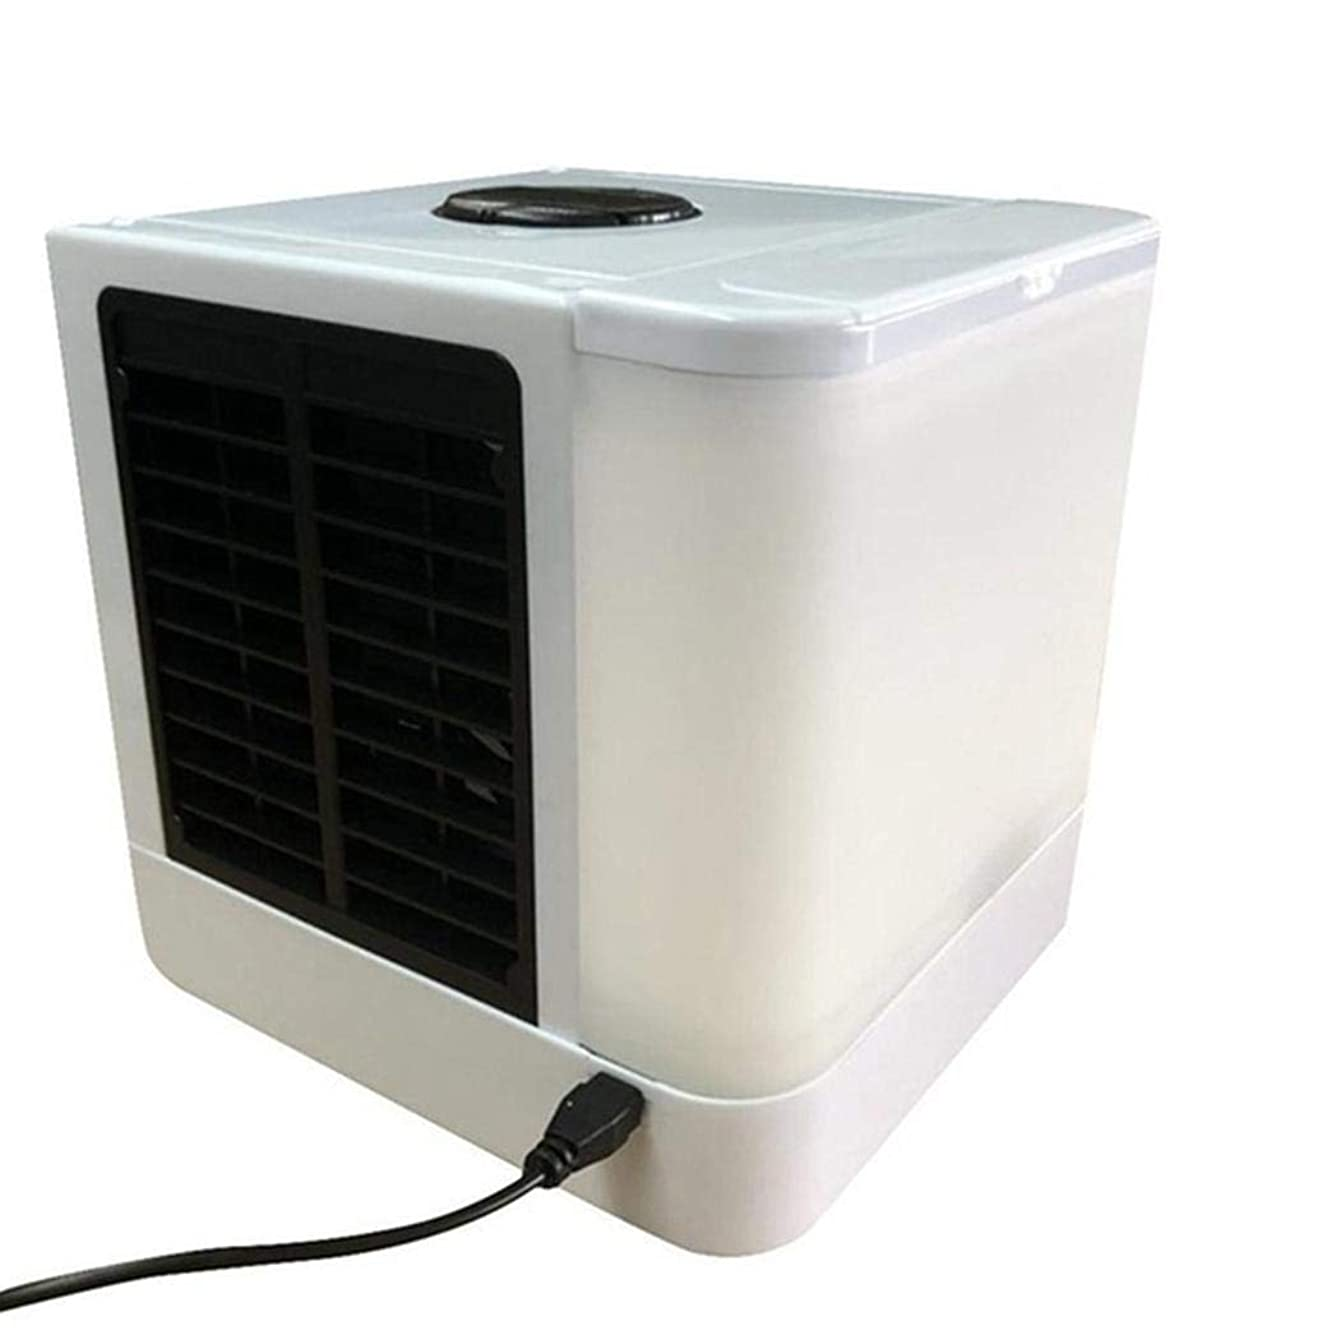 neneleo New USB Portable Air Conditioner Outdoor Office Room Hotel Rapid Cooling Fan Portable